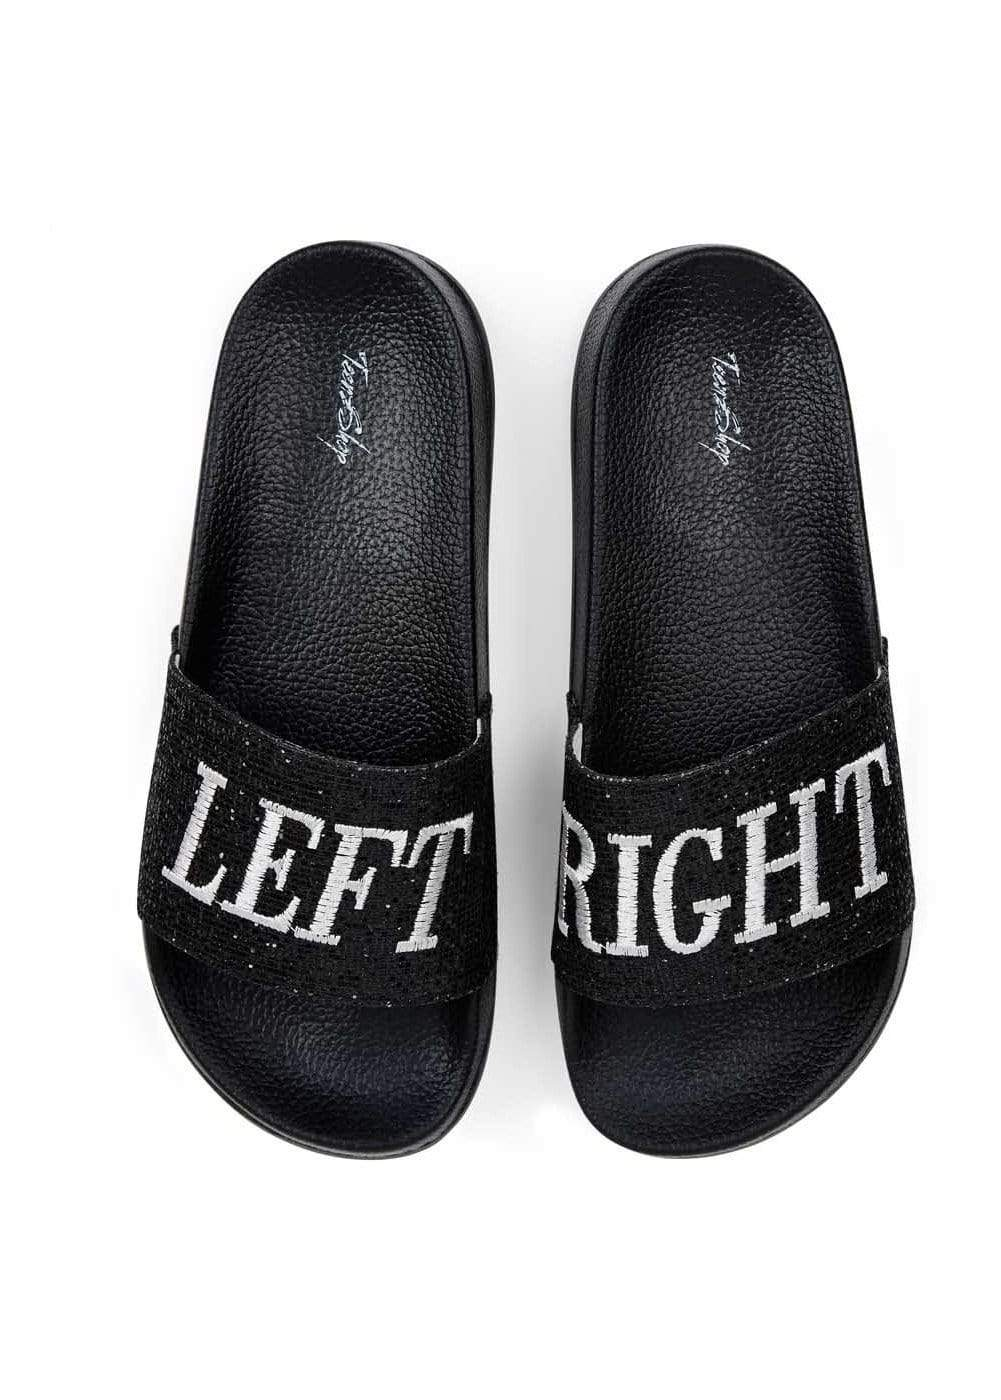 Girls Left Right Glitter Pool Sliders-TeenzShop